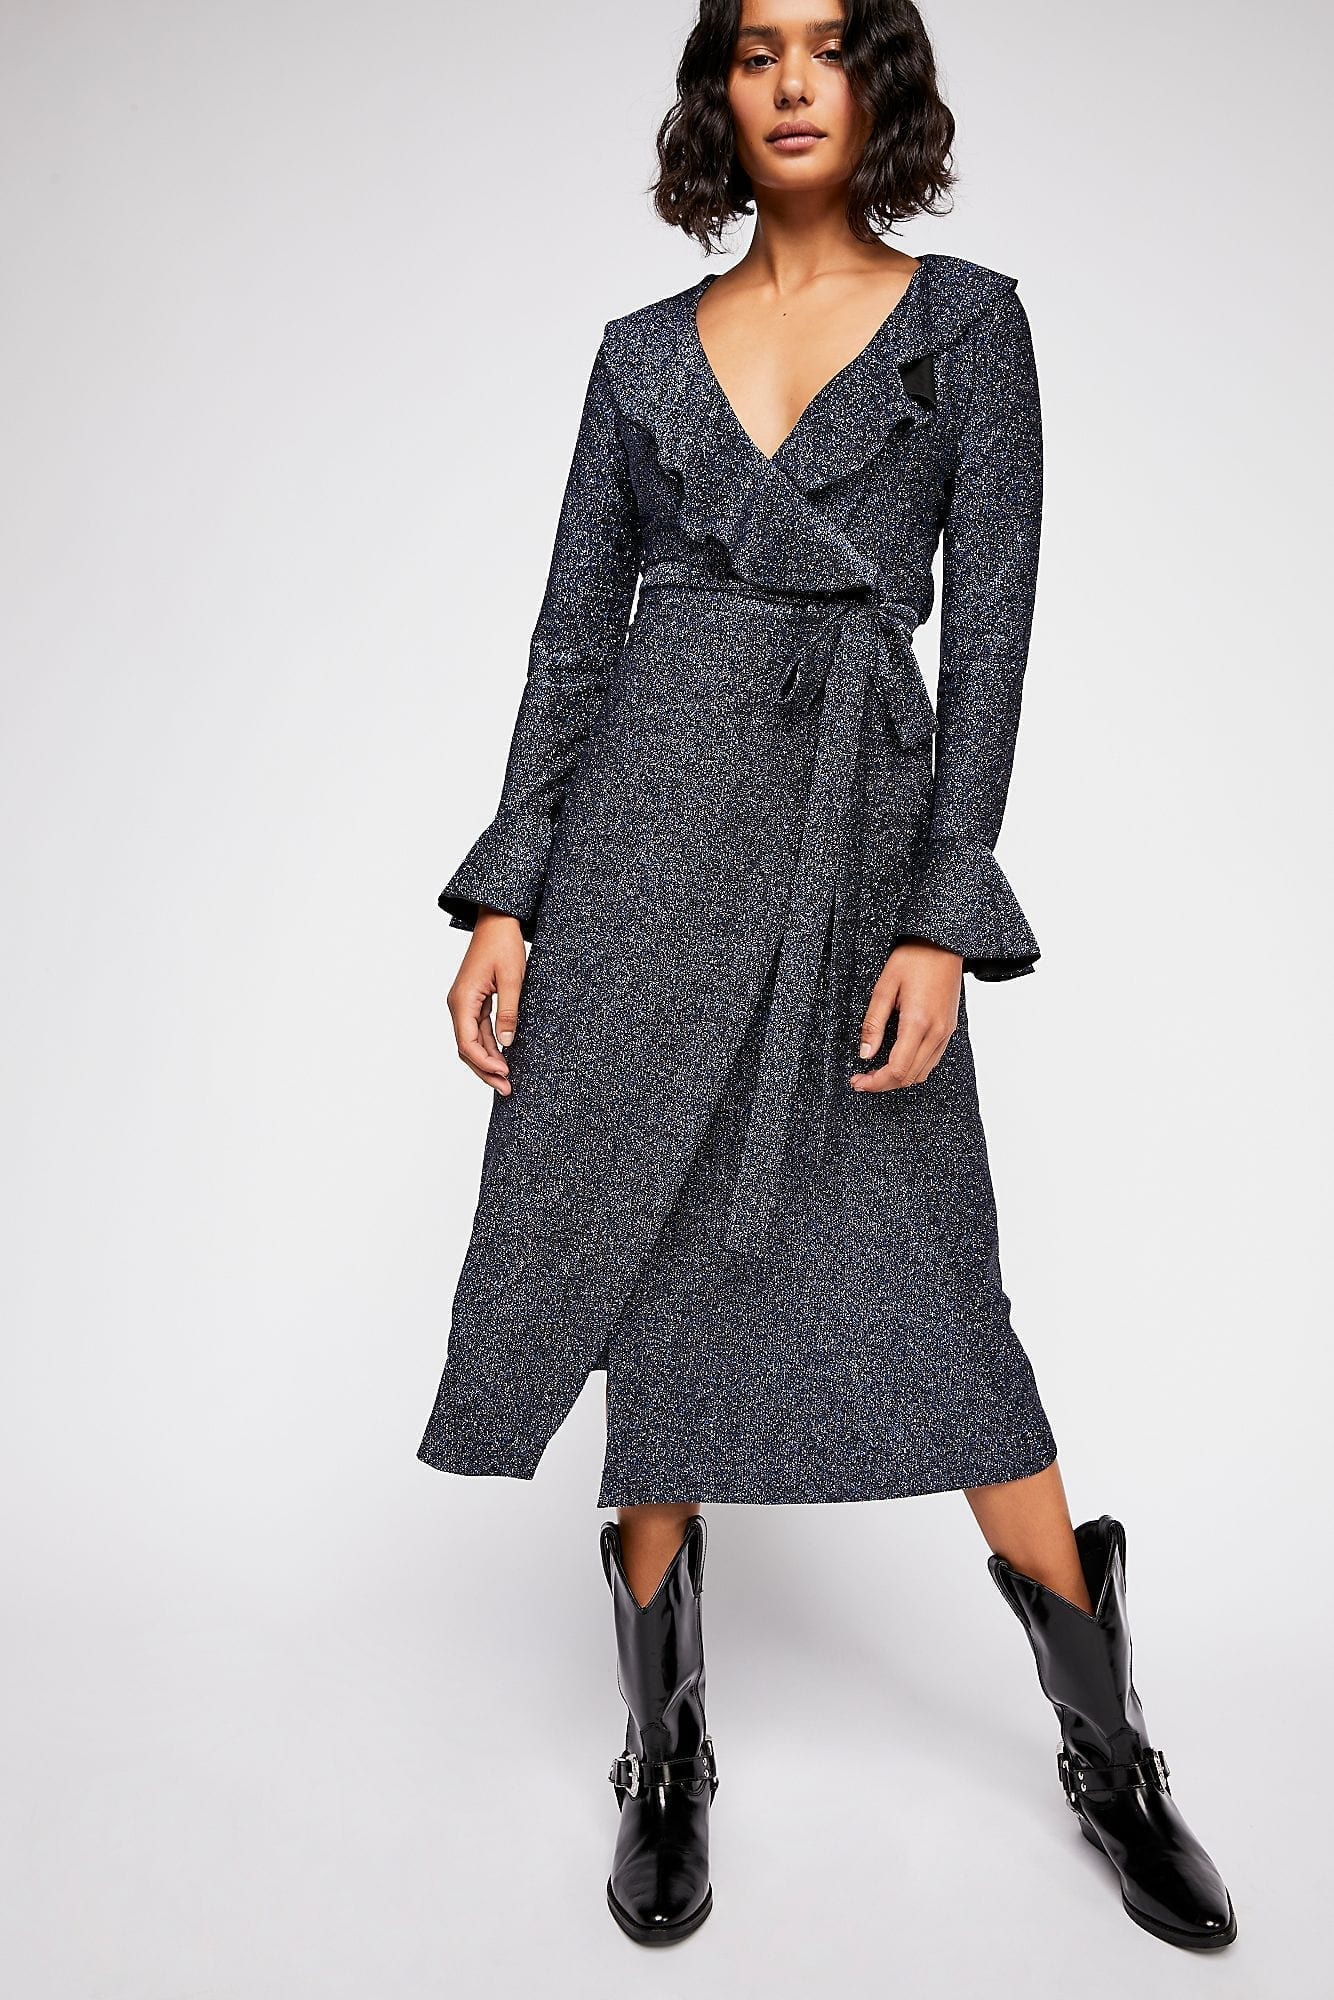 FREEPEOPLE One More Time Lurex Wrap Navy Dress